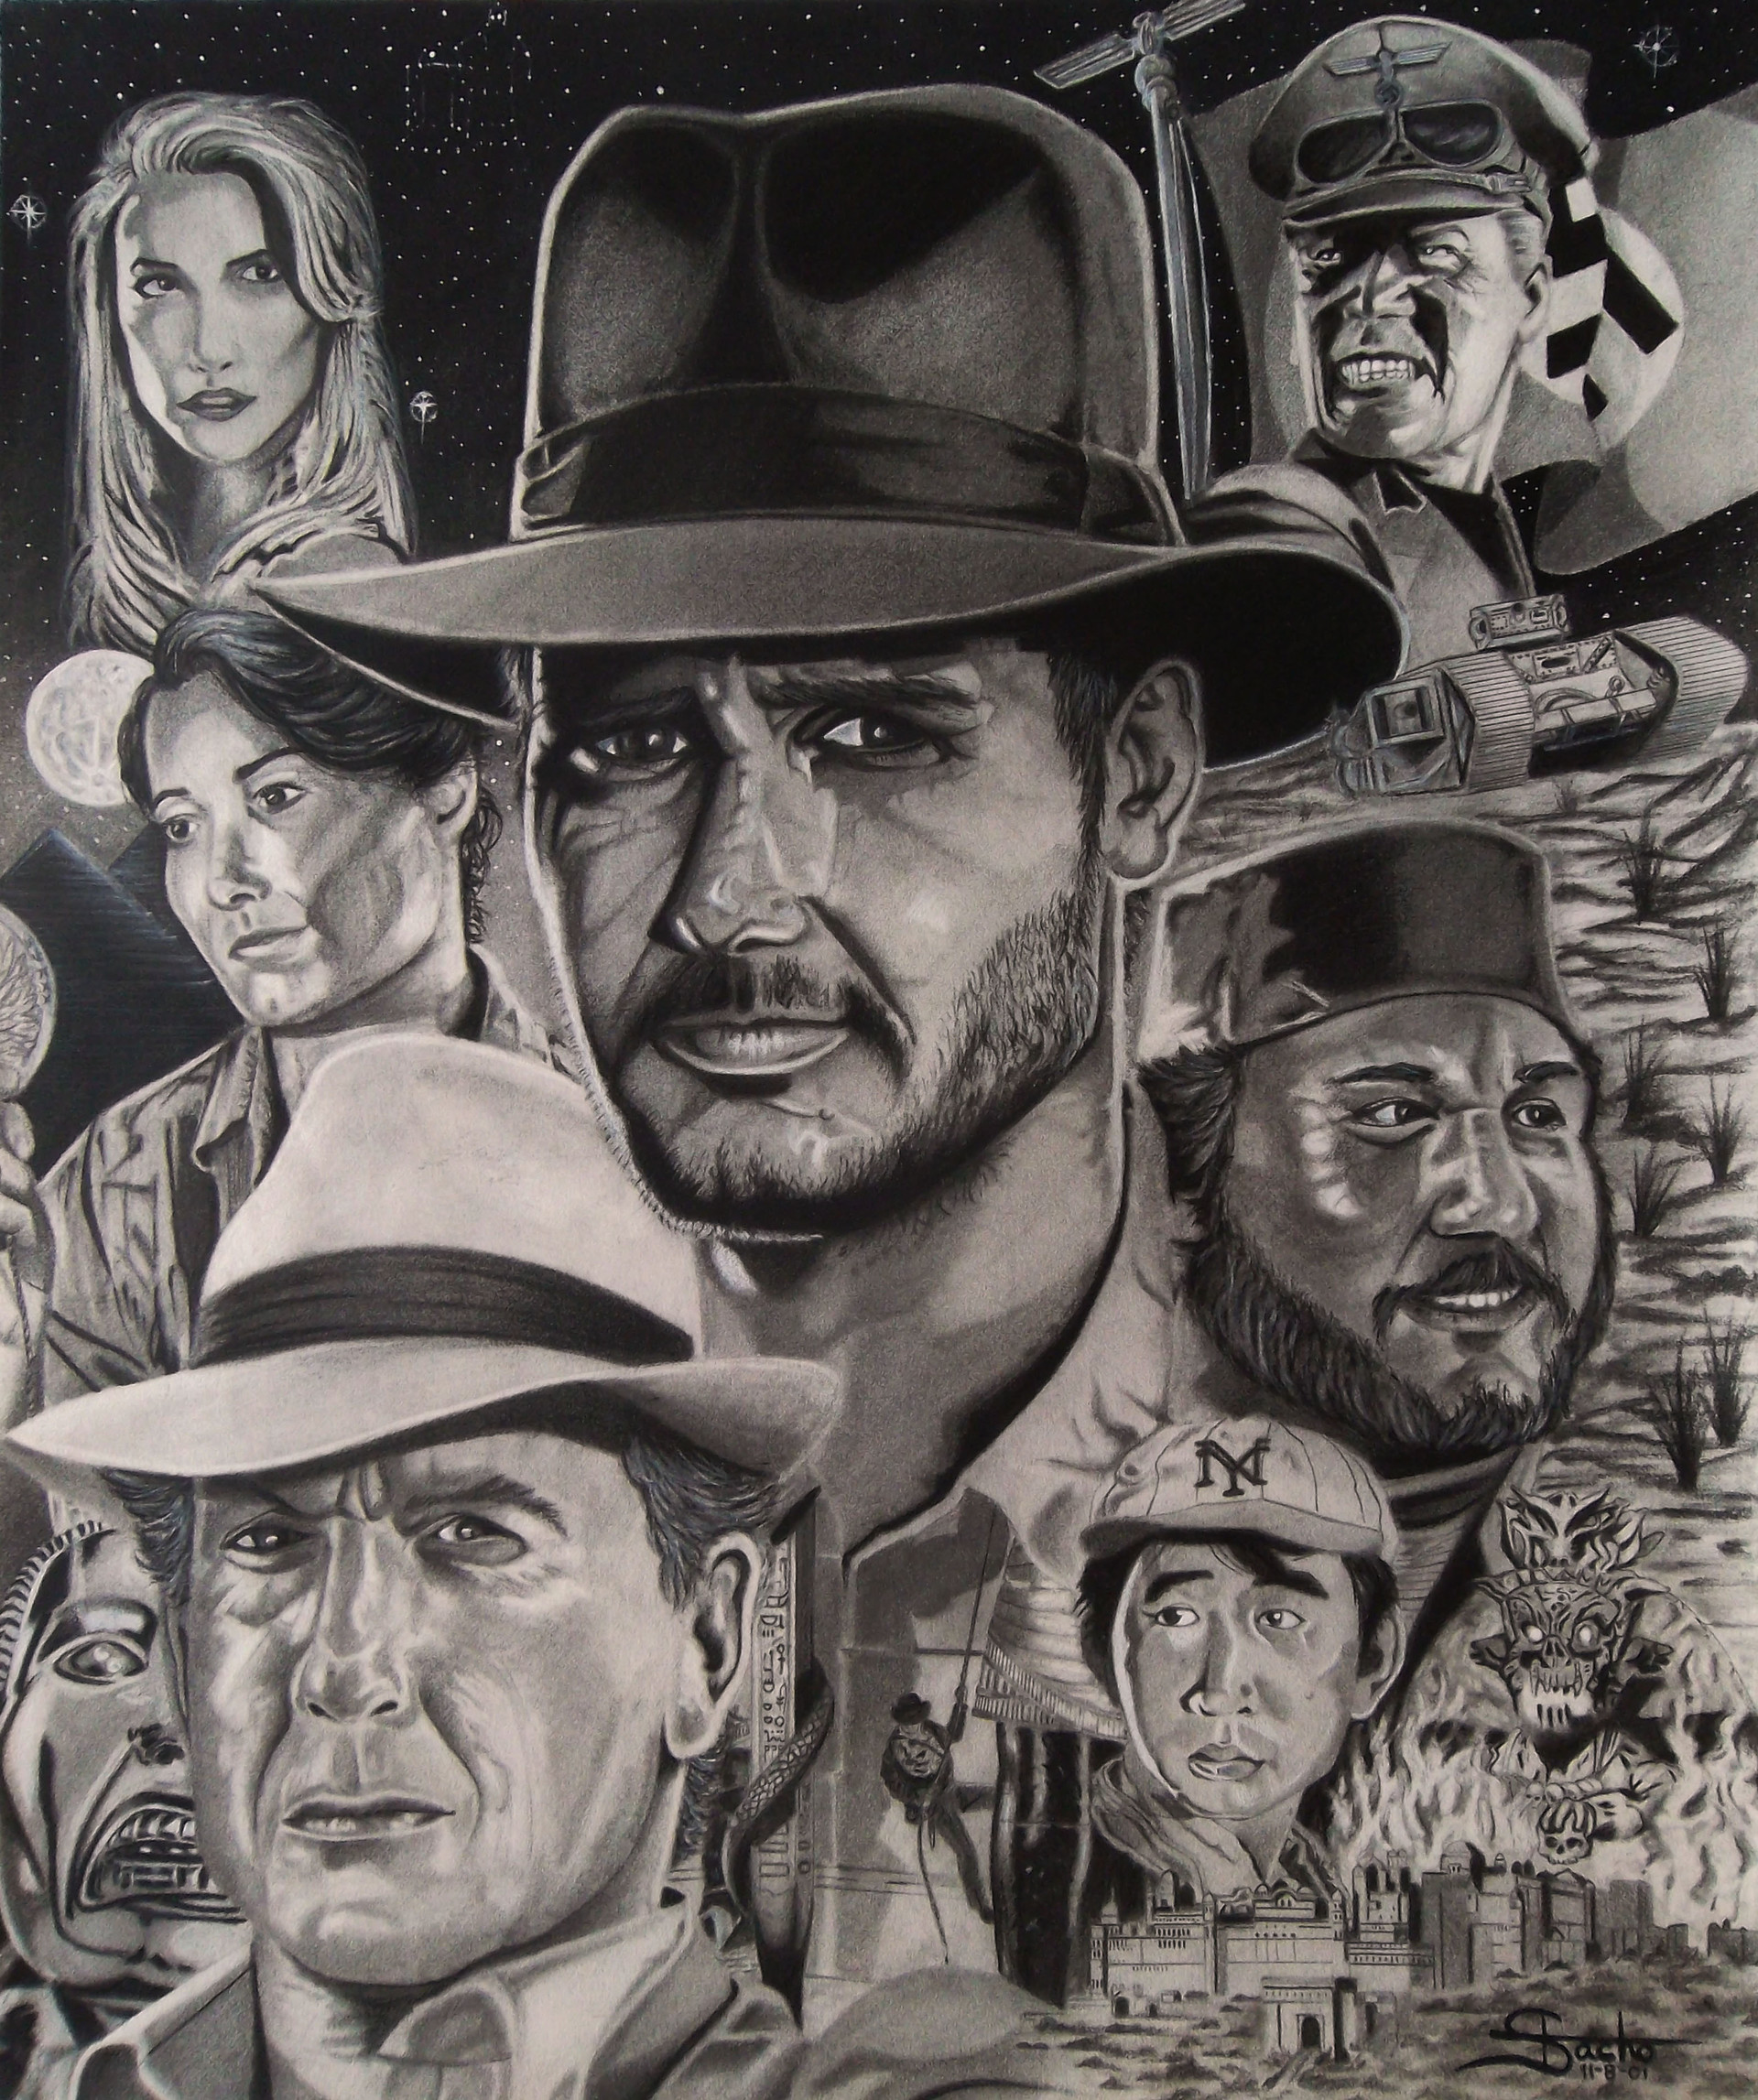 """The Indiana Jones Trilogy """"Raiders of the Lost Ark is, in my opinion, the best all around film ever made. From pre to post production, it was well written and directed with the perfect balance of humor, romance, action and adventure."""